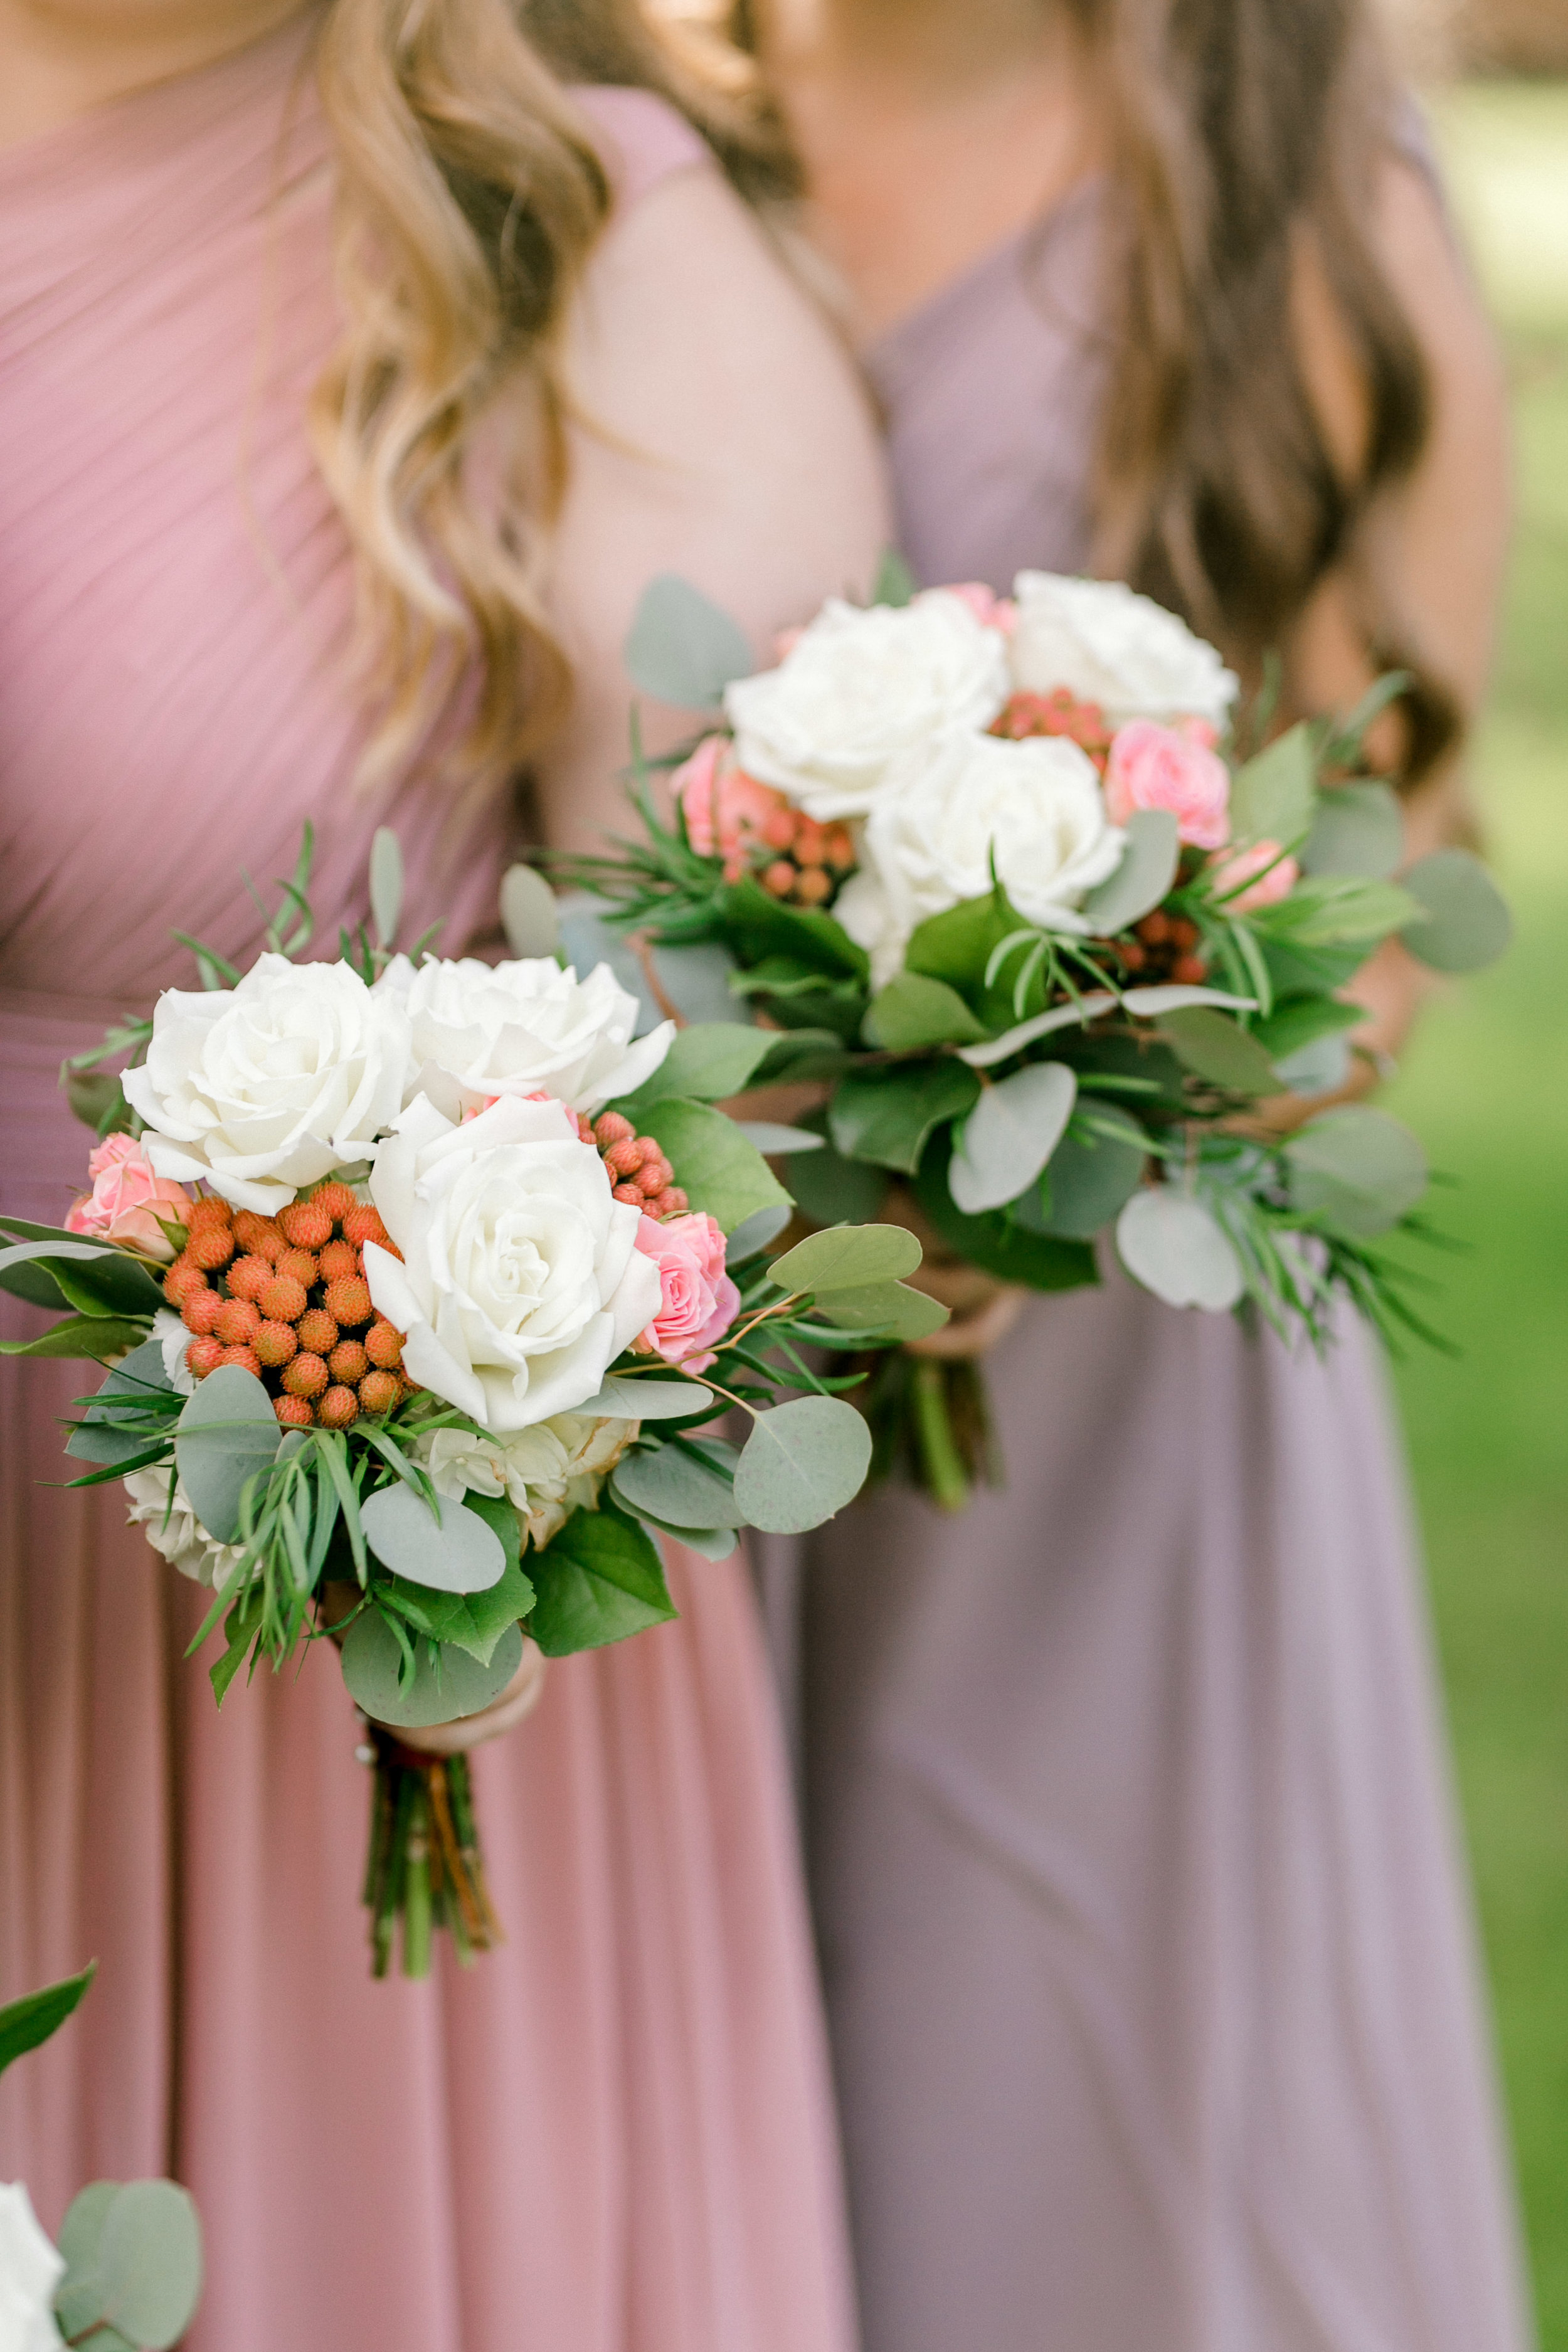 Natalie-and-Trent-Wedding-Day-THE-SPRINGS-EVENT-VENUE-Norman-Oklahoma-by-Emily-Nicole-Photo-432.jpg